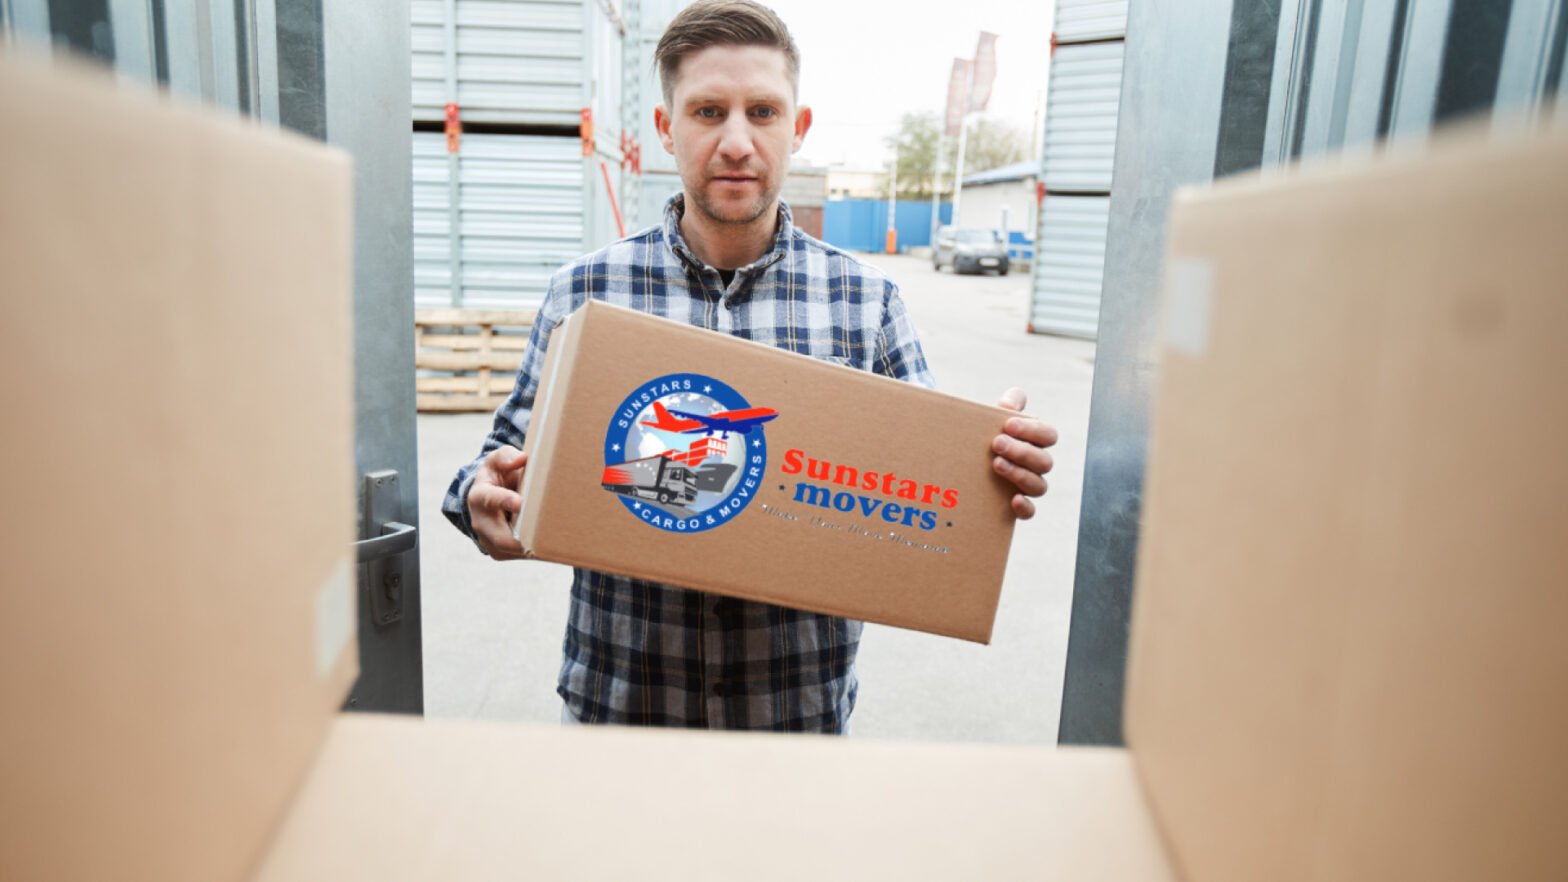 Best movers and packers in Sharjah at sunstars movers